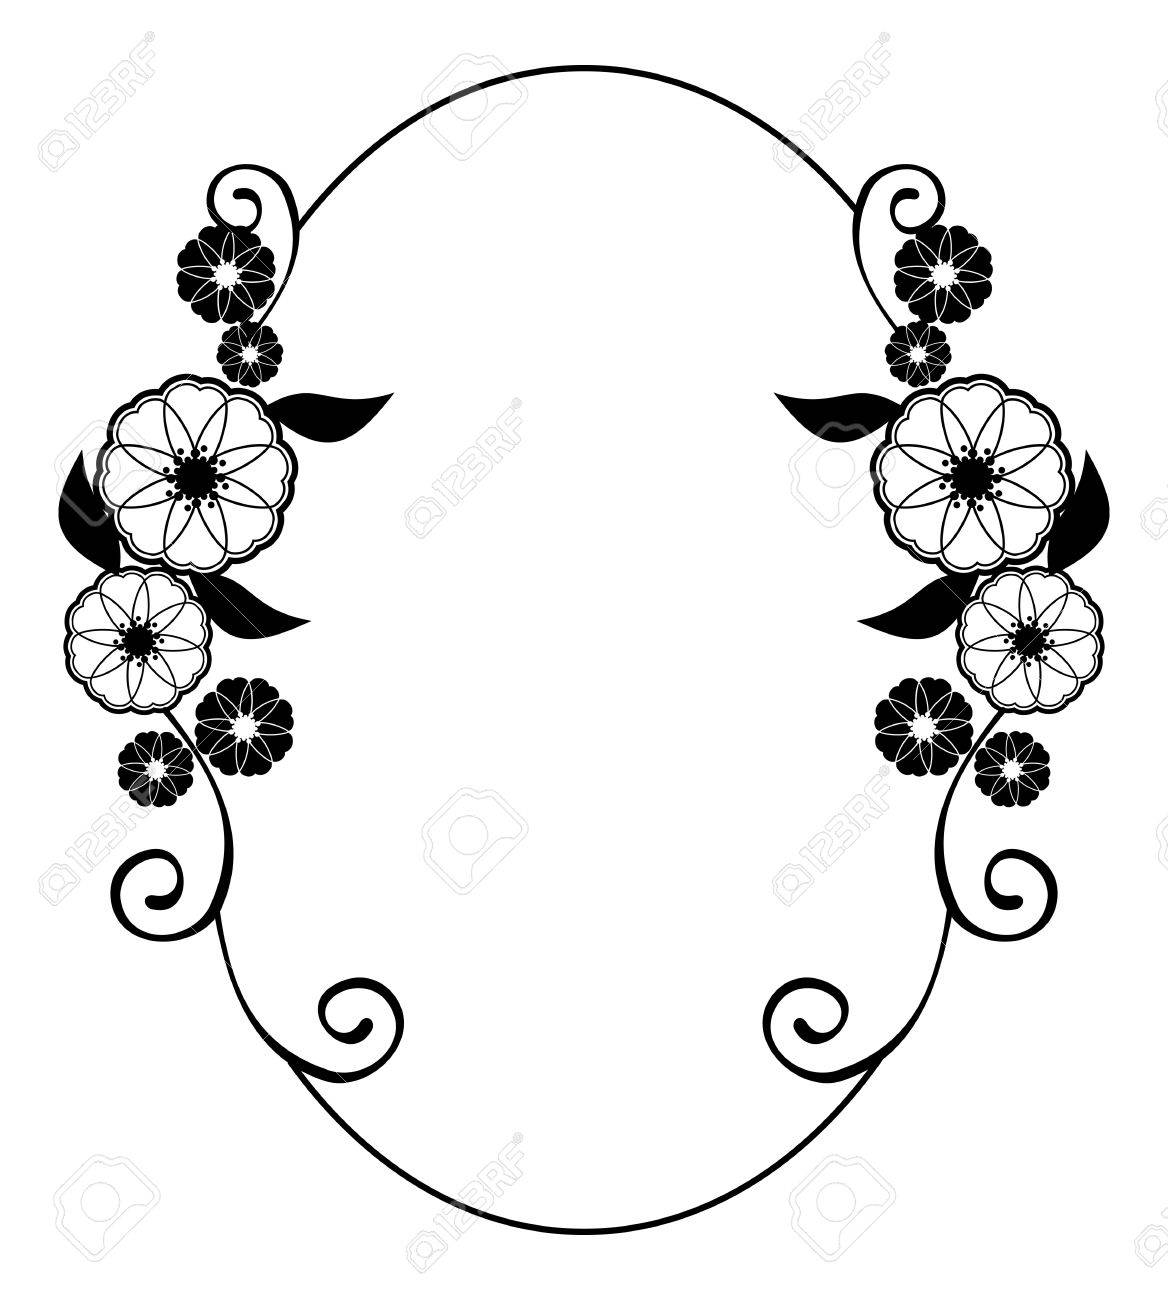 1168x1300 Round Flower Frame. Decorative Flowers Arranged On A Shape